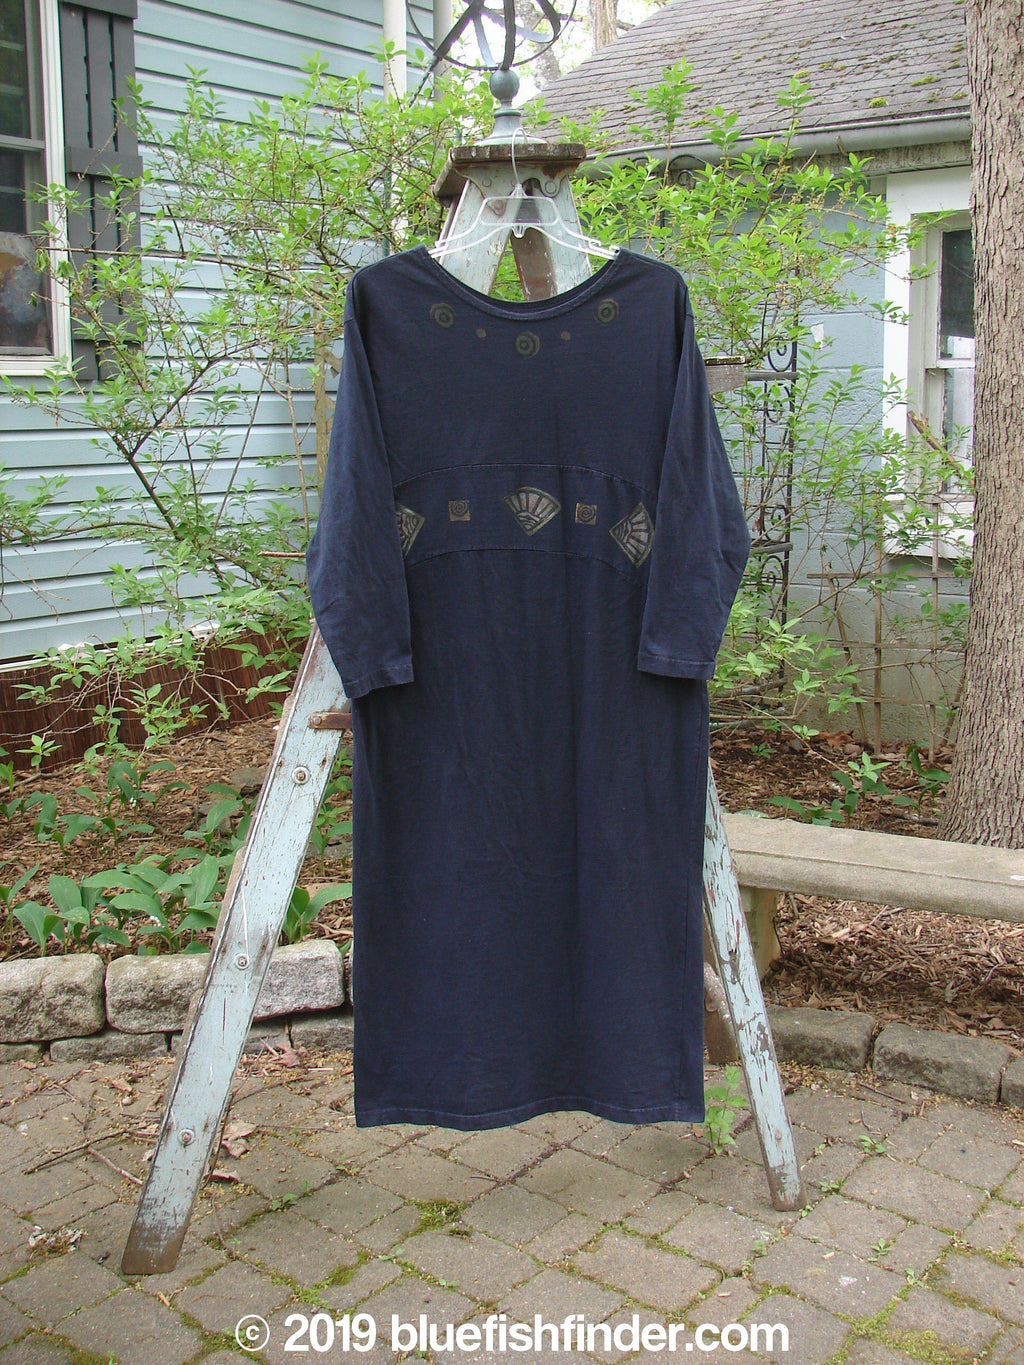 Vintage Blue Fish Clothing 1995 Empire Dress Fan Black Velvet Size 1- Bluefishfinder.com